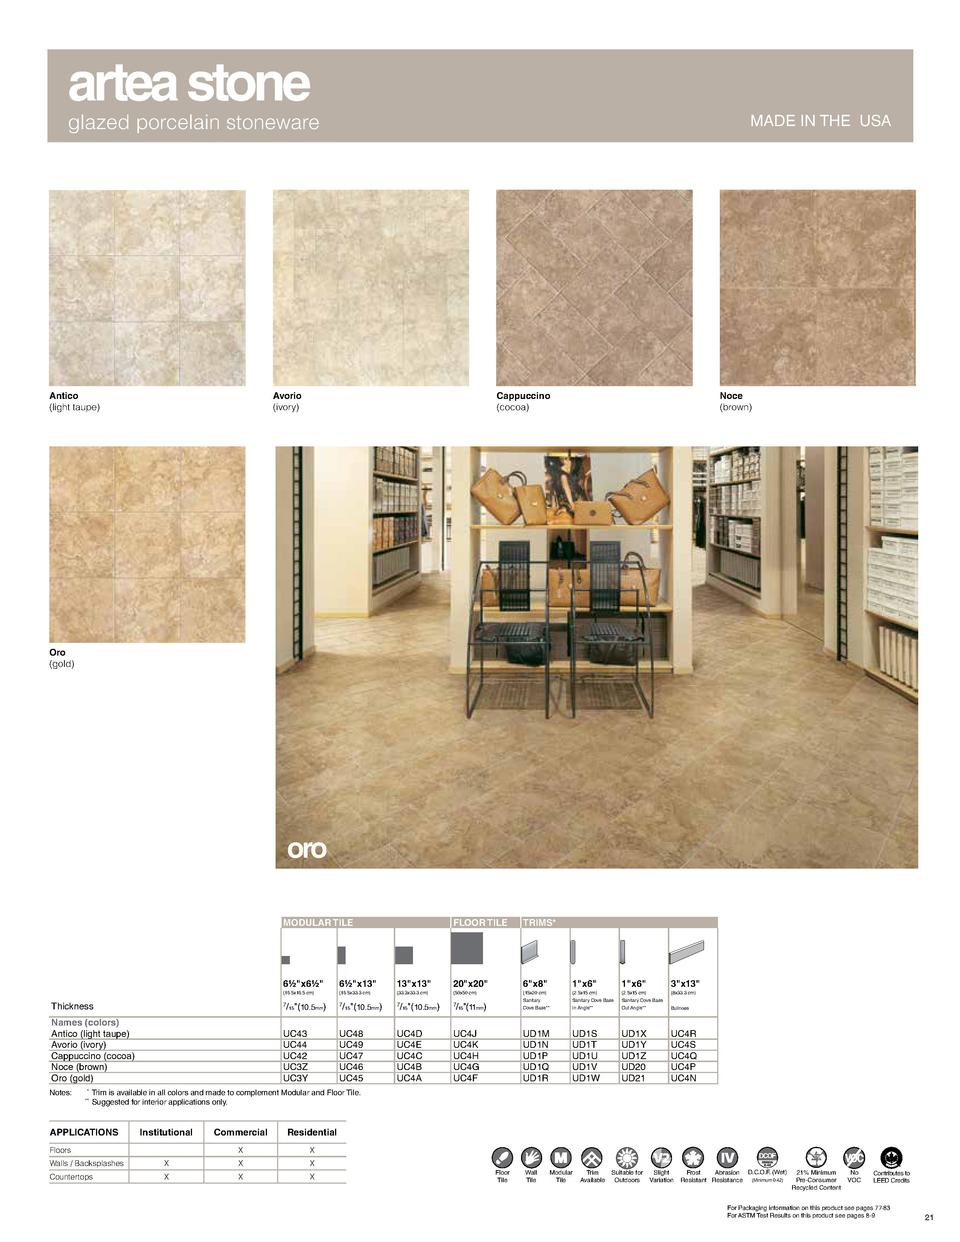 artea stone  glazed porcelain stoneware  Antico  light taupe   MADE IN THE USA  Avorio  ivory   Cappuccino  cocoa   Noce  ...